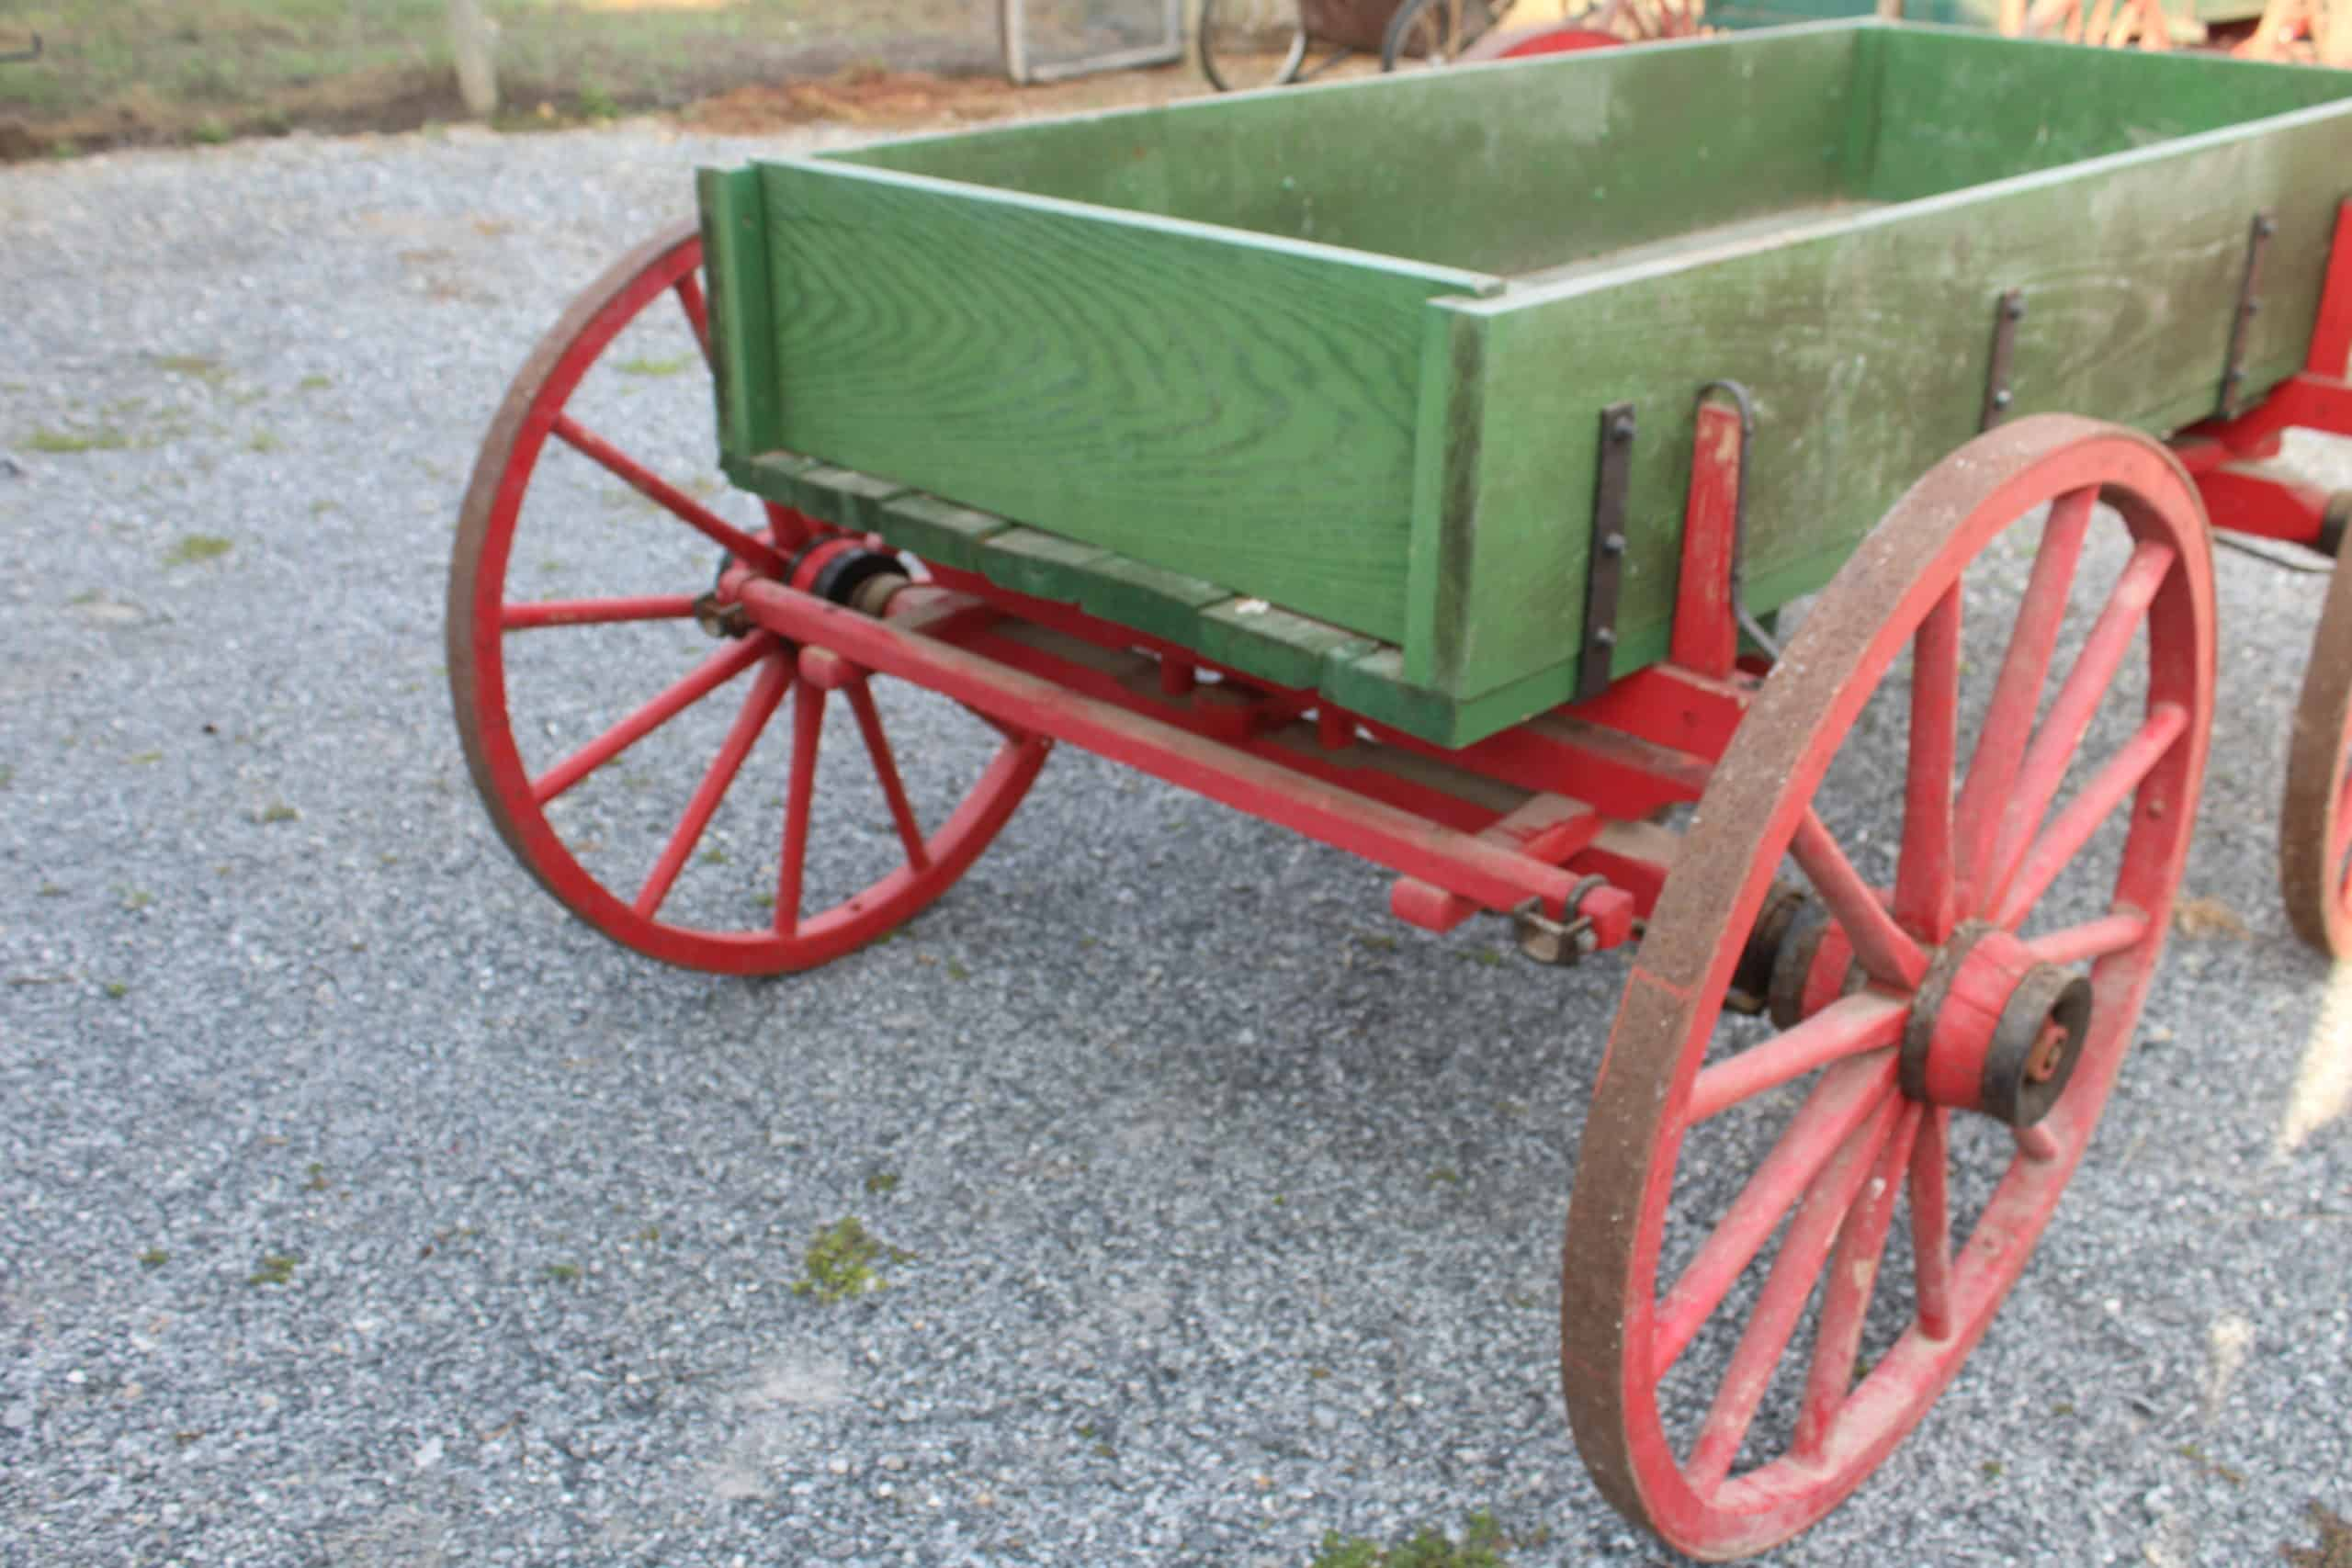 "#600 1-Horse Farm Wagon, Red Wheels, Green Body, Bed Size 40"" Wide x 8' Long, Good Condition, No Shaft, $700.00"